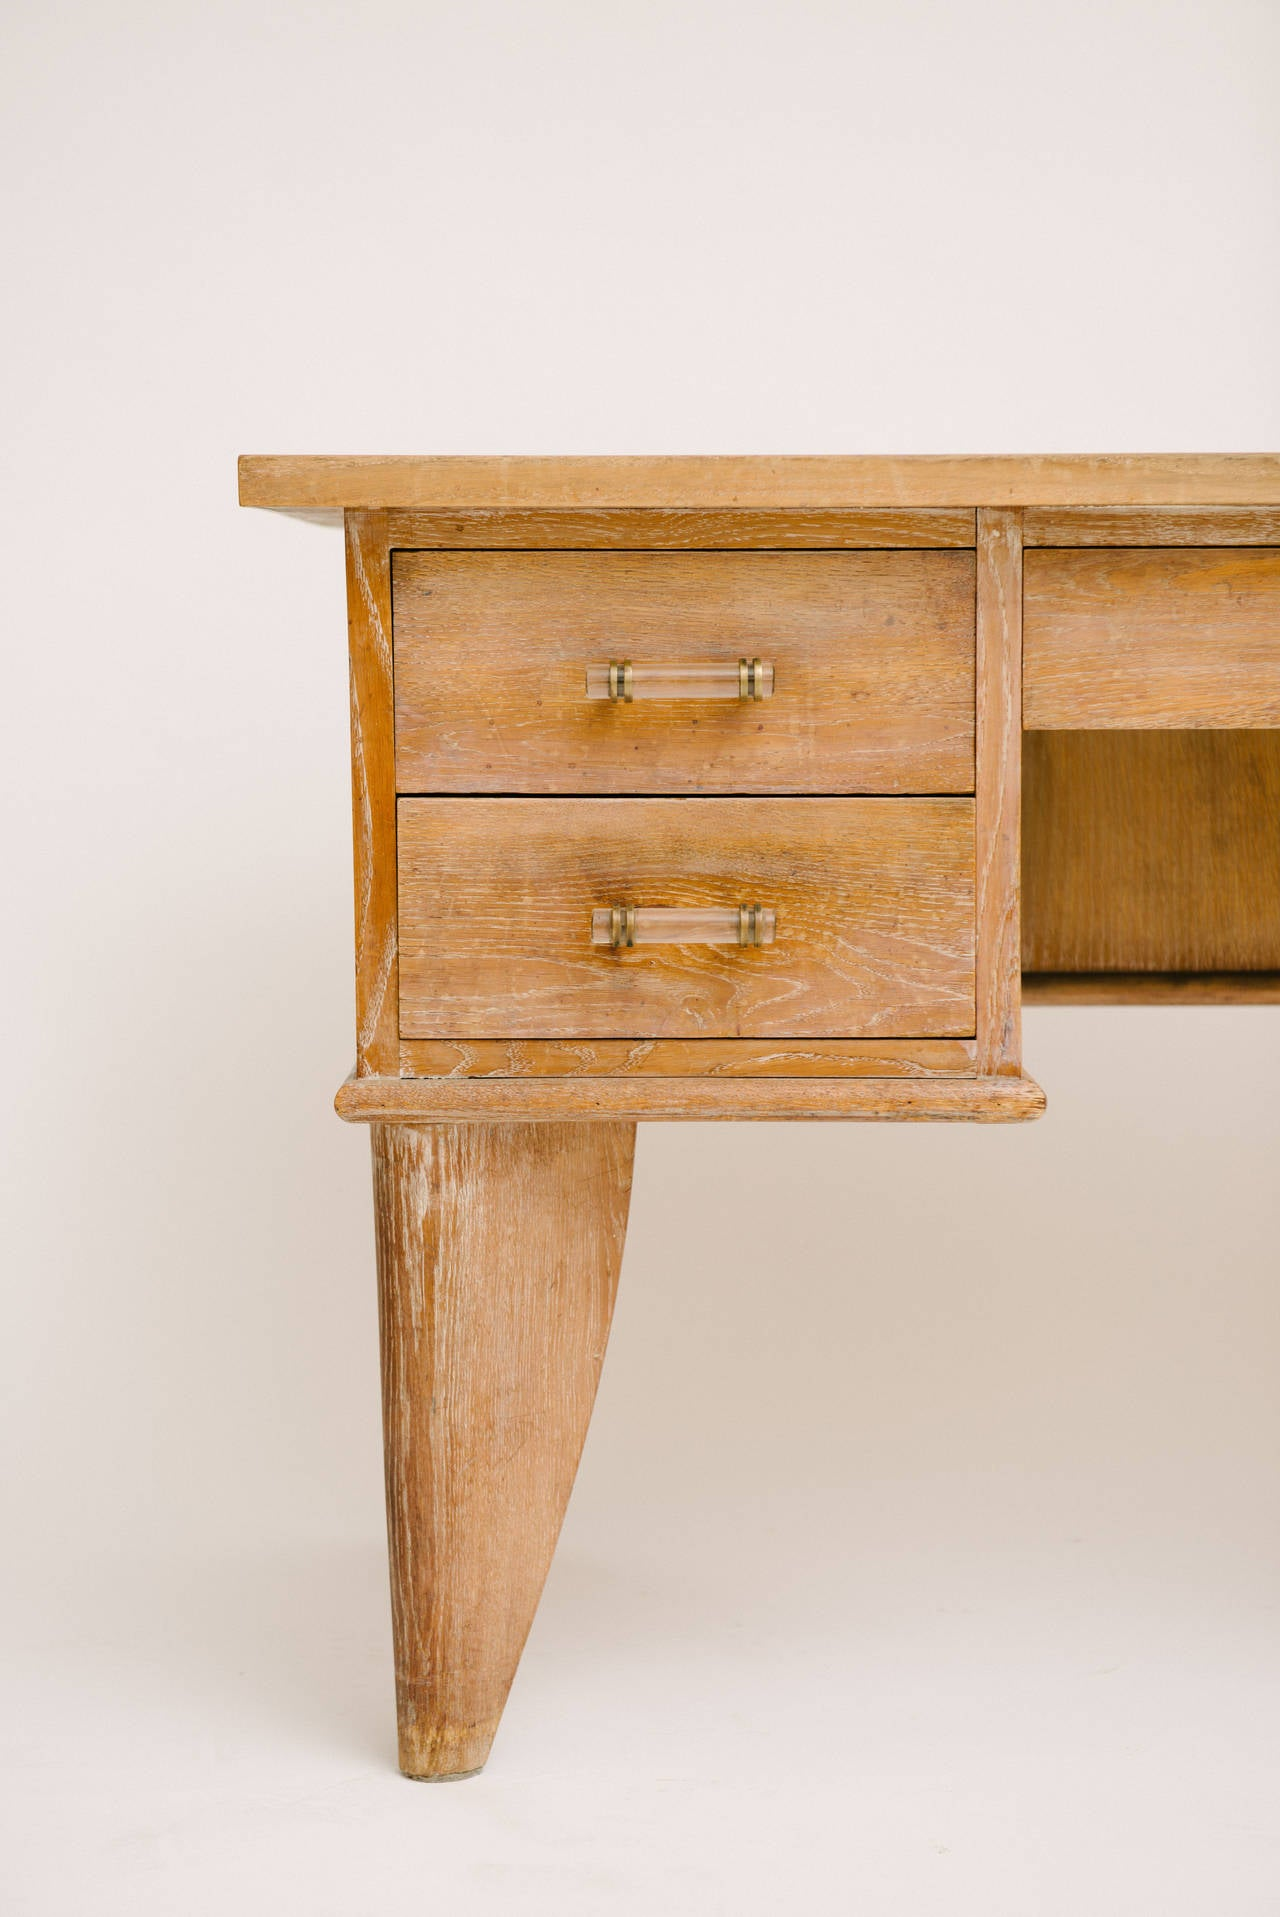 French Art Deco cerused oak desk with glass and bronze handles. Front opening for chair measures 14.5 inches wide.